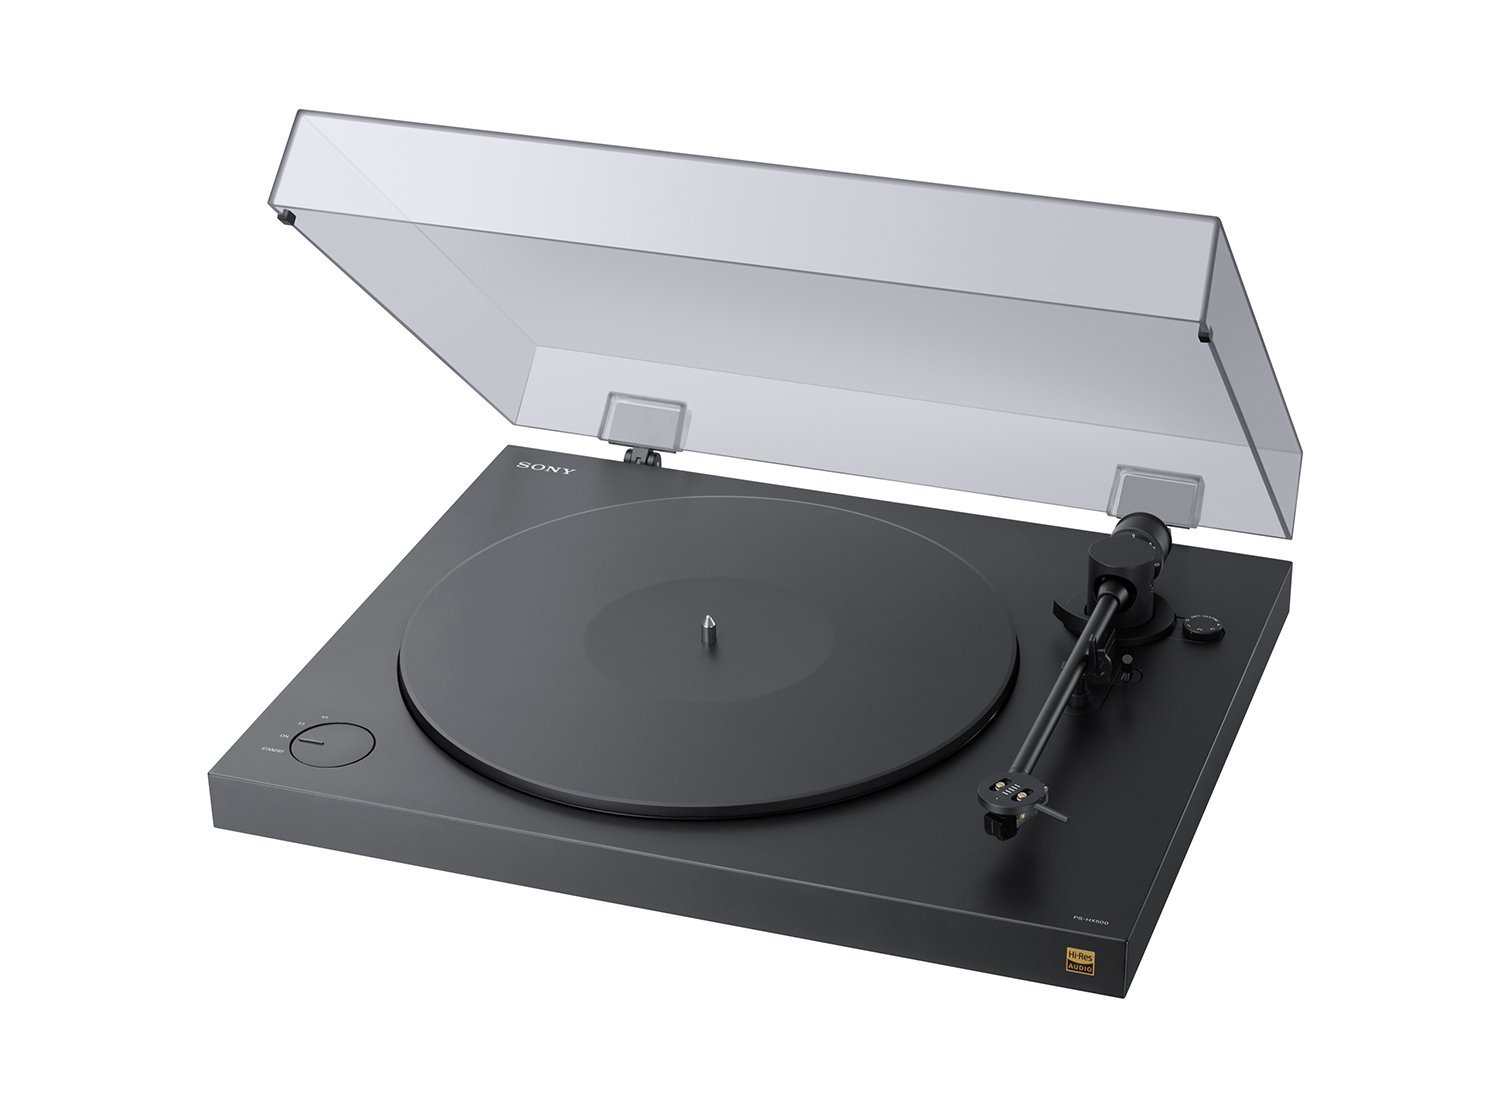 Best Affordable Record Player